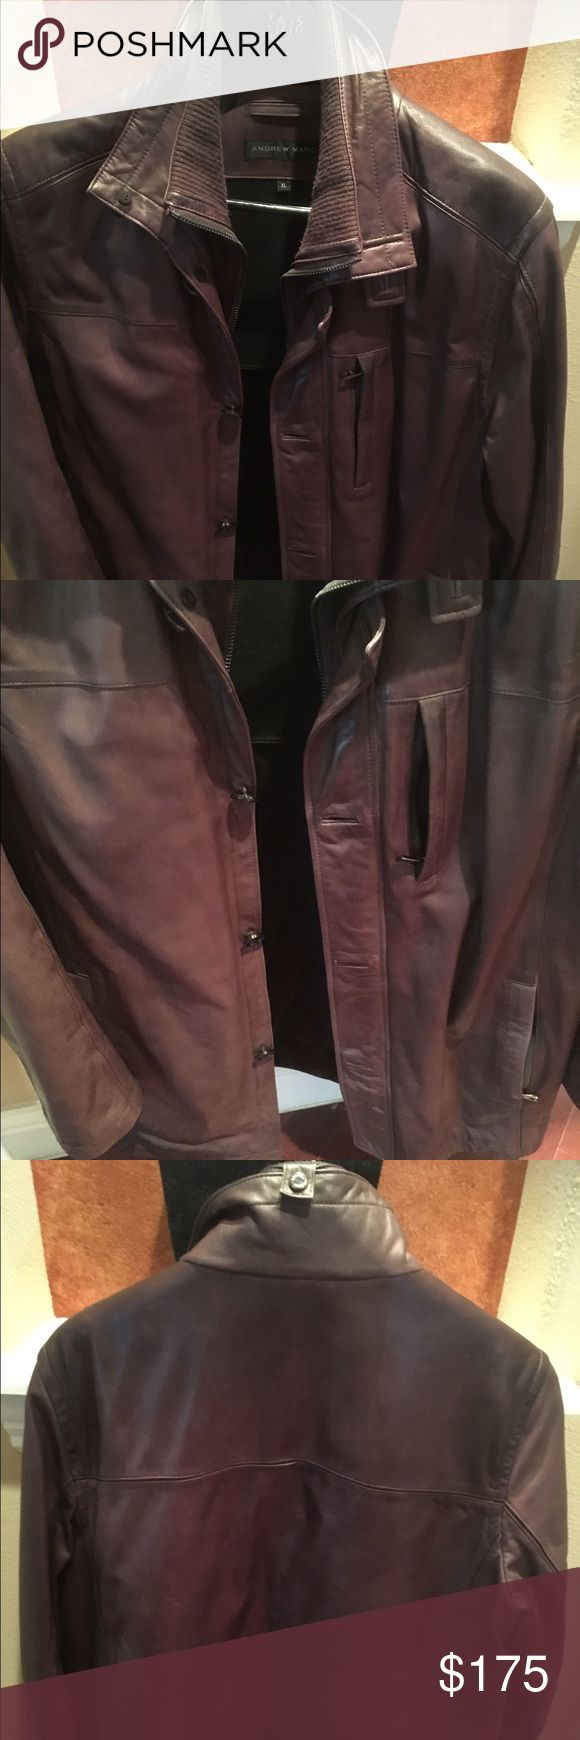 Brown Andrew Marc Leather  jacket Brown Andrew Marc Butter soft Leather  jacket with double collar, outer pockets and functional zipper pocket. Has button and zip closure. Andrew Marc Jackets & Coats